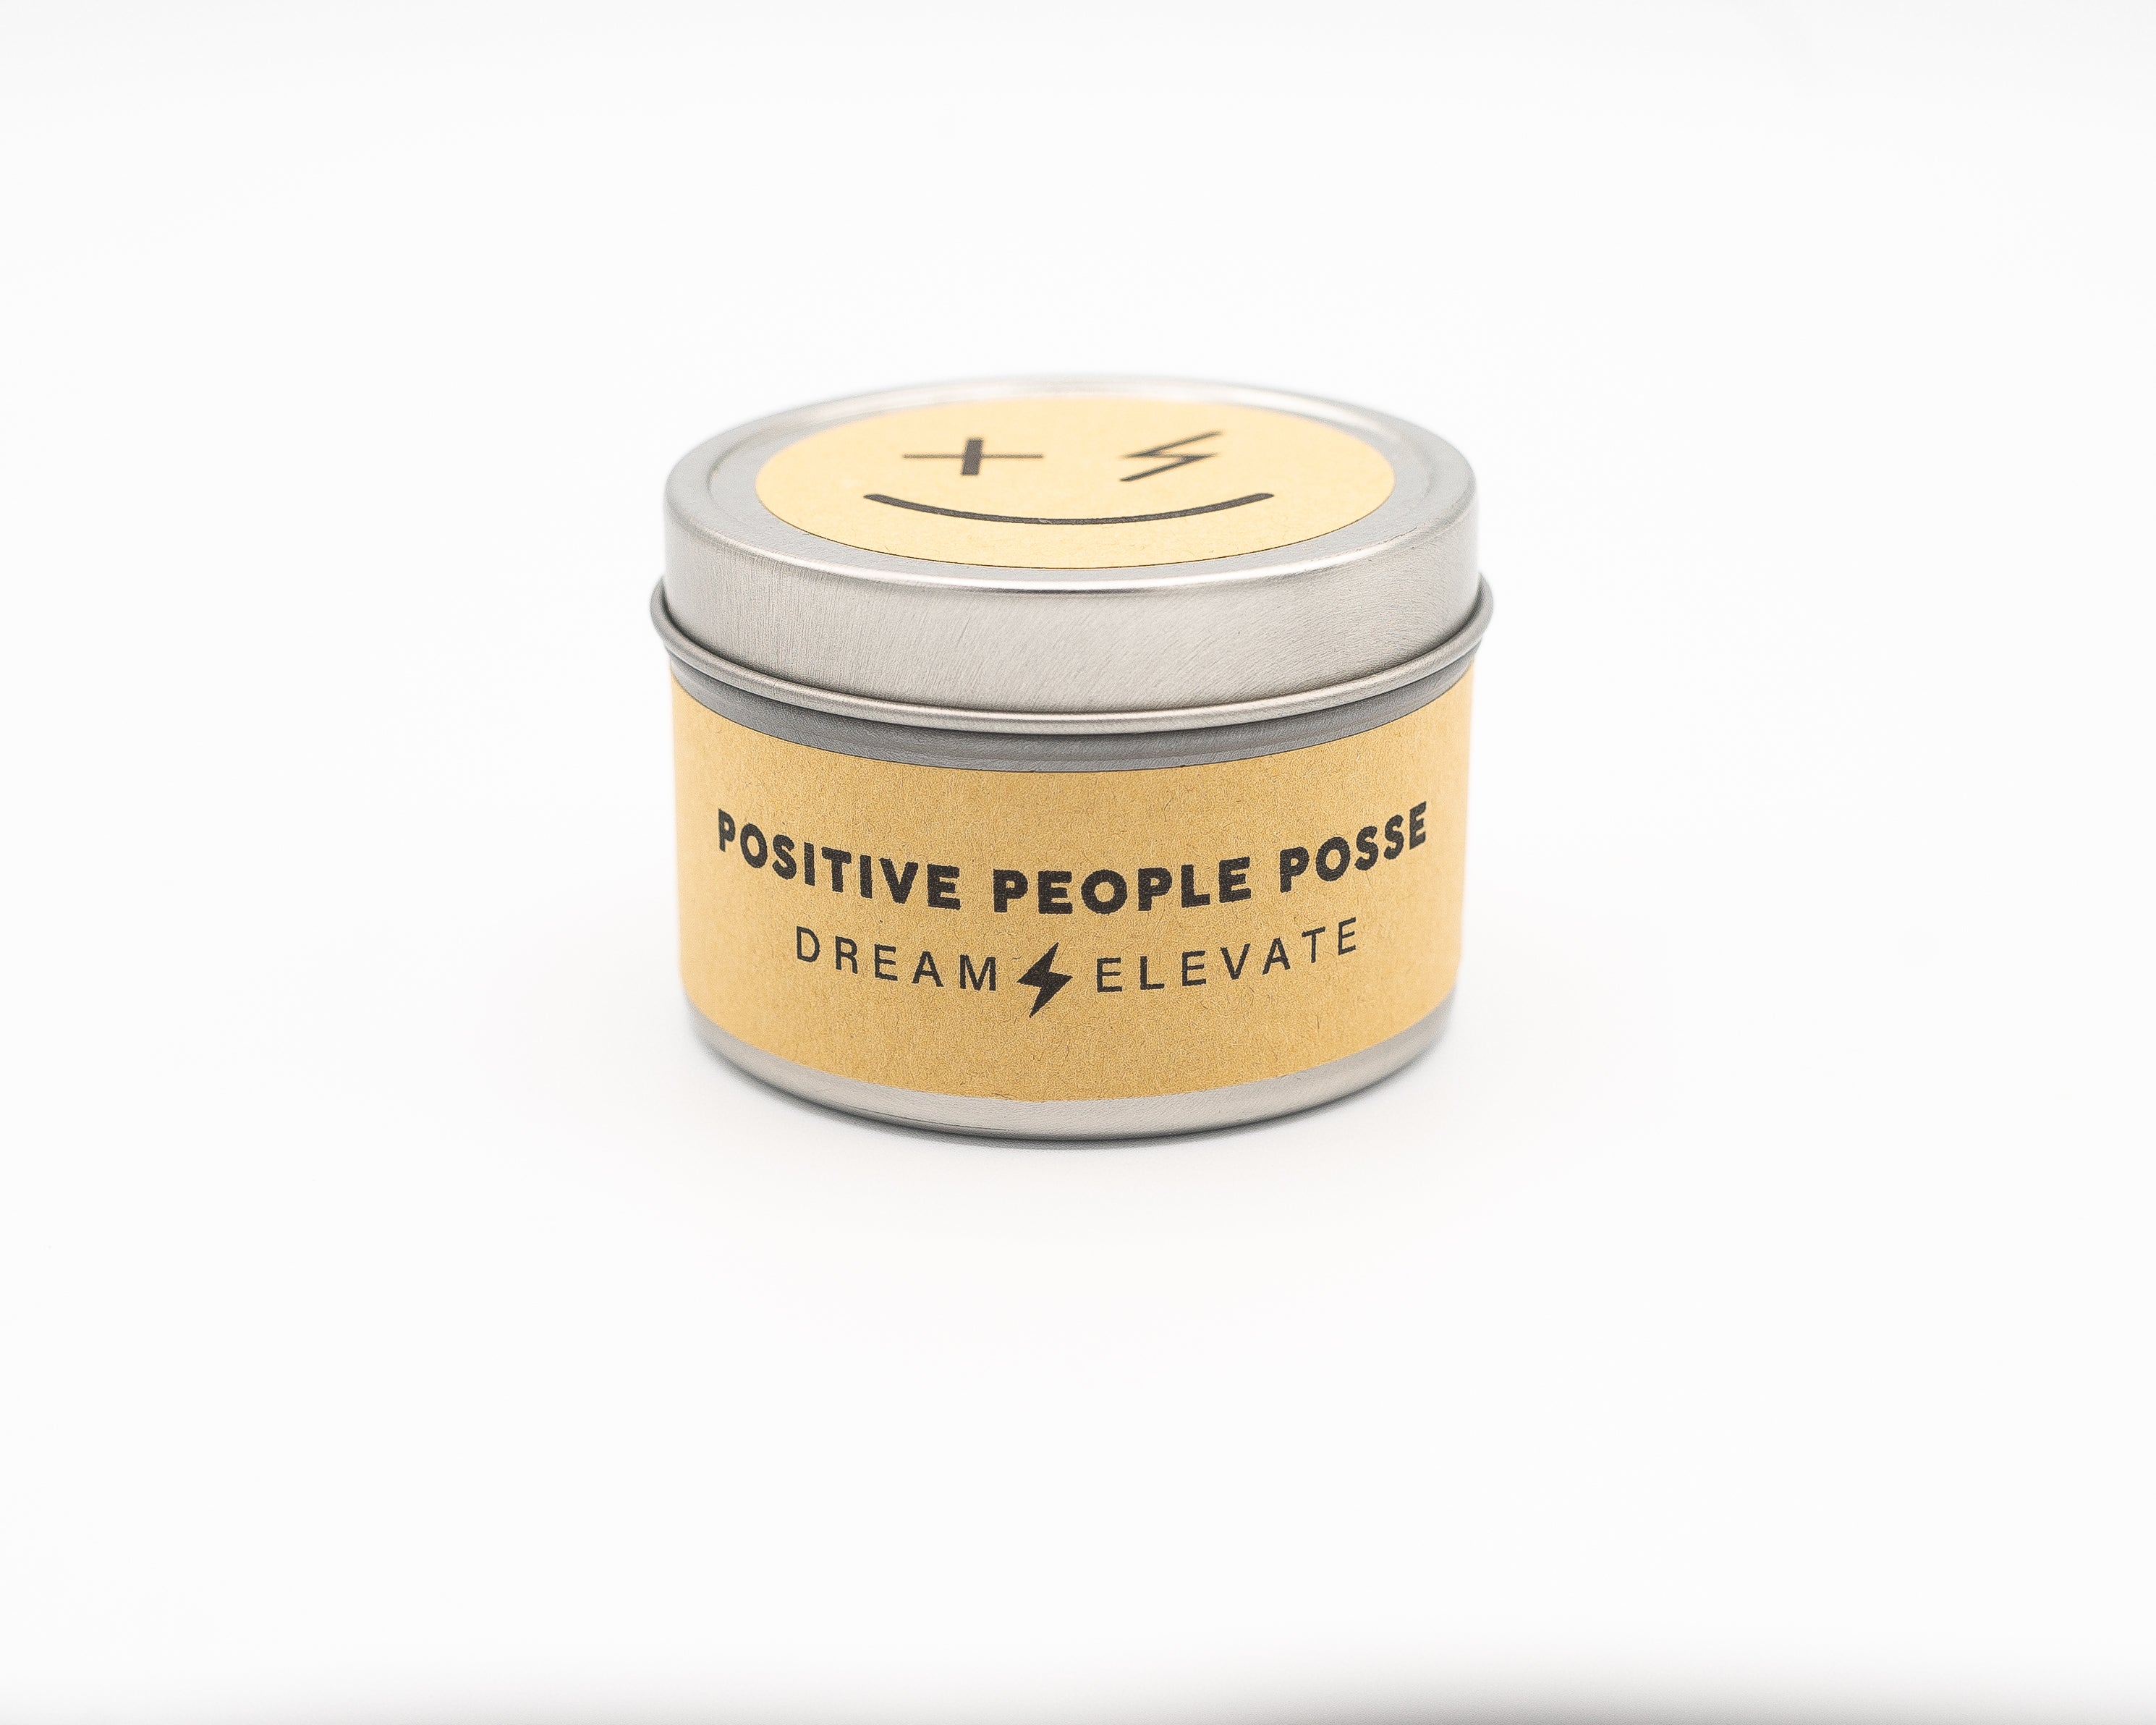 """Dream & Elevate"" 20 hour 4 OZ Candle - +Positive People Posse+"